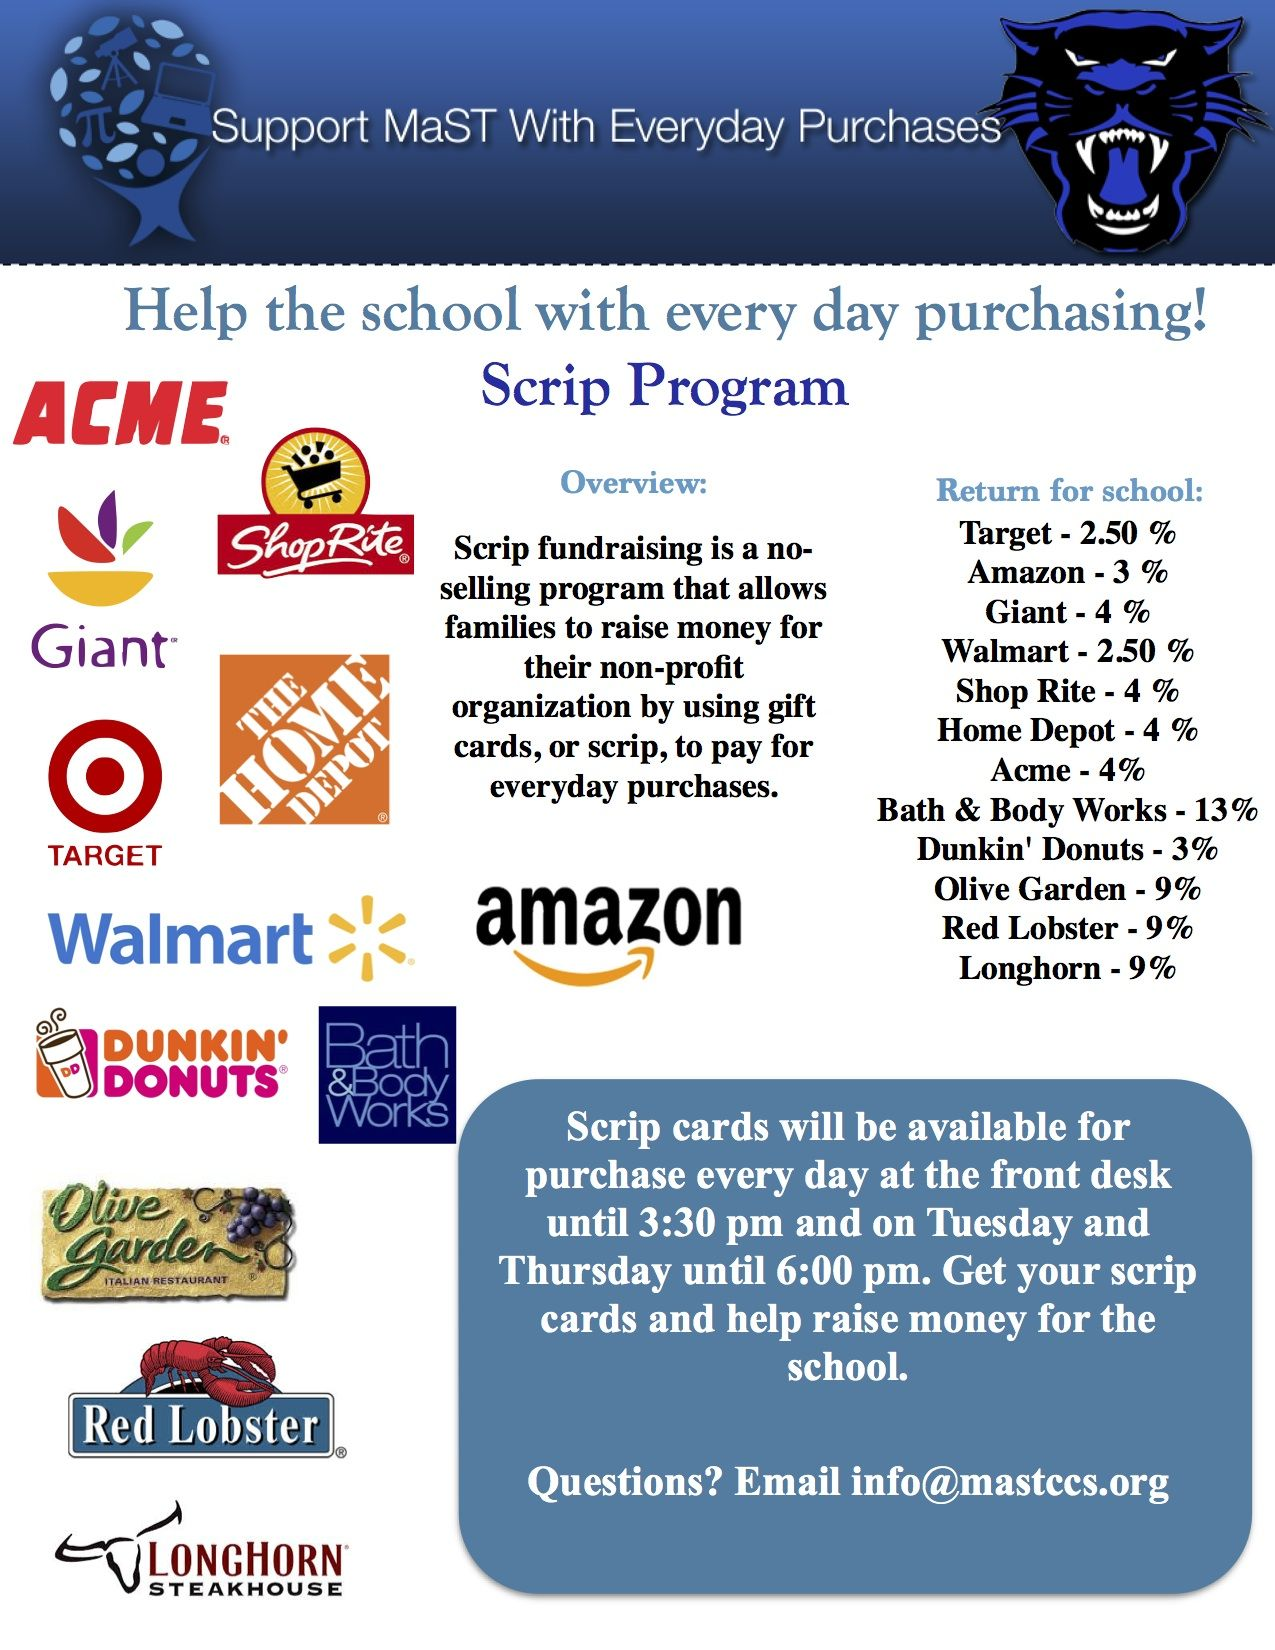 Scrip Gift Cards Fundraising Flyer  Google Search  Fundraising